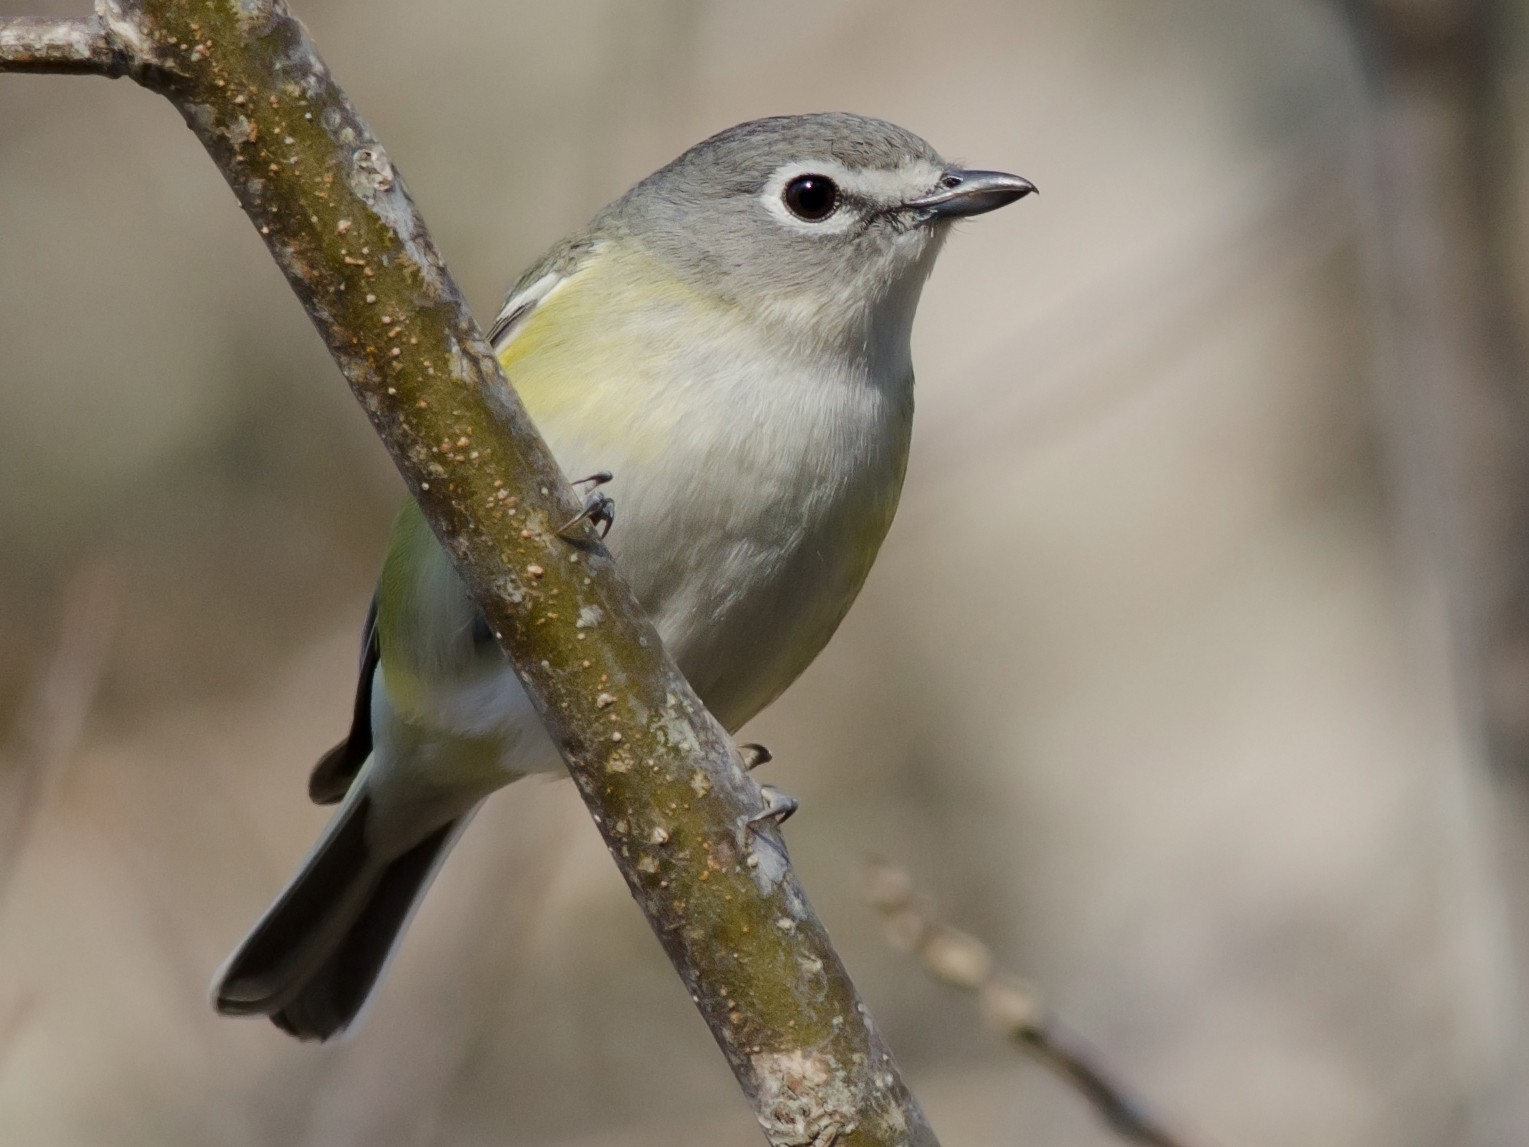 Blue-headed Vireo - Alix d'Entremont